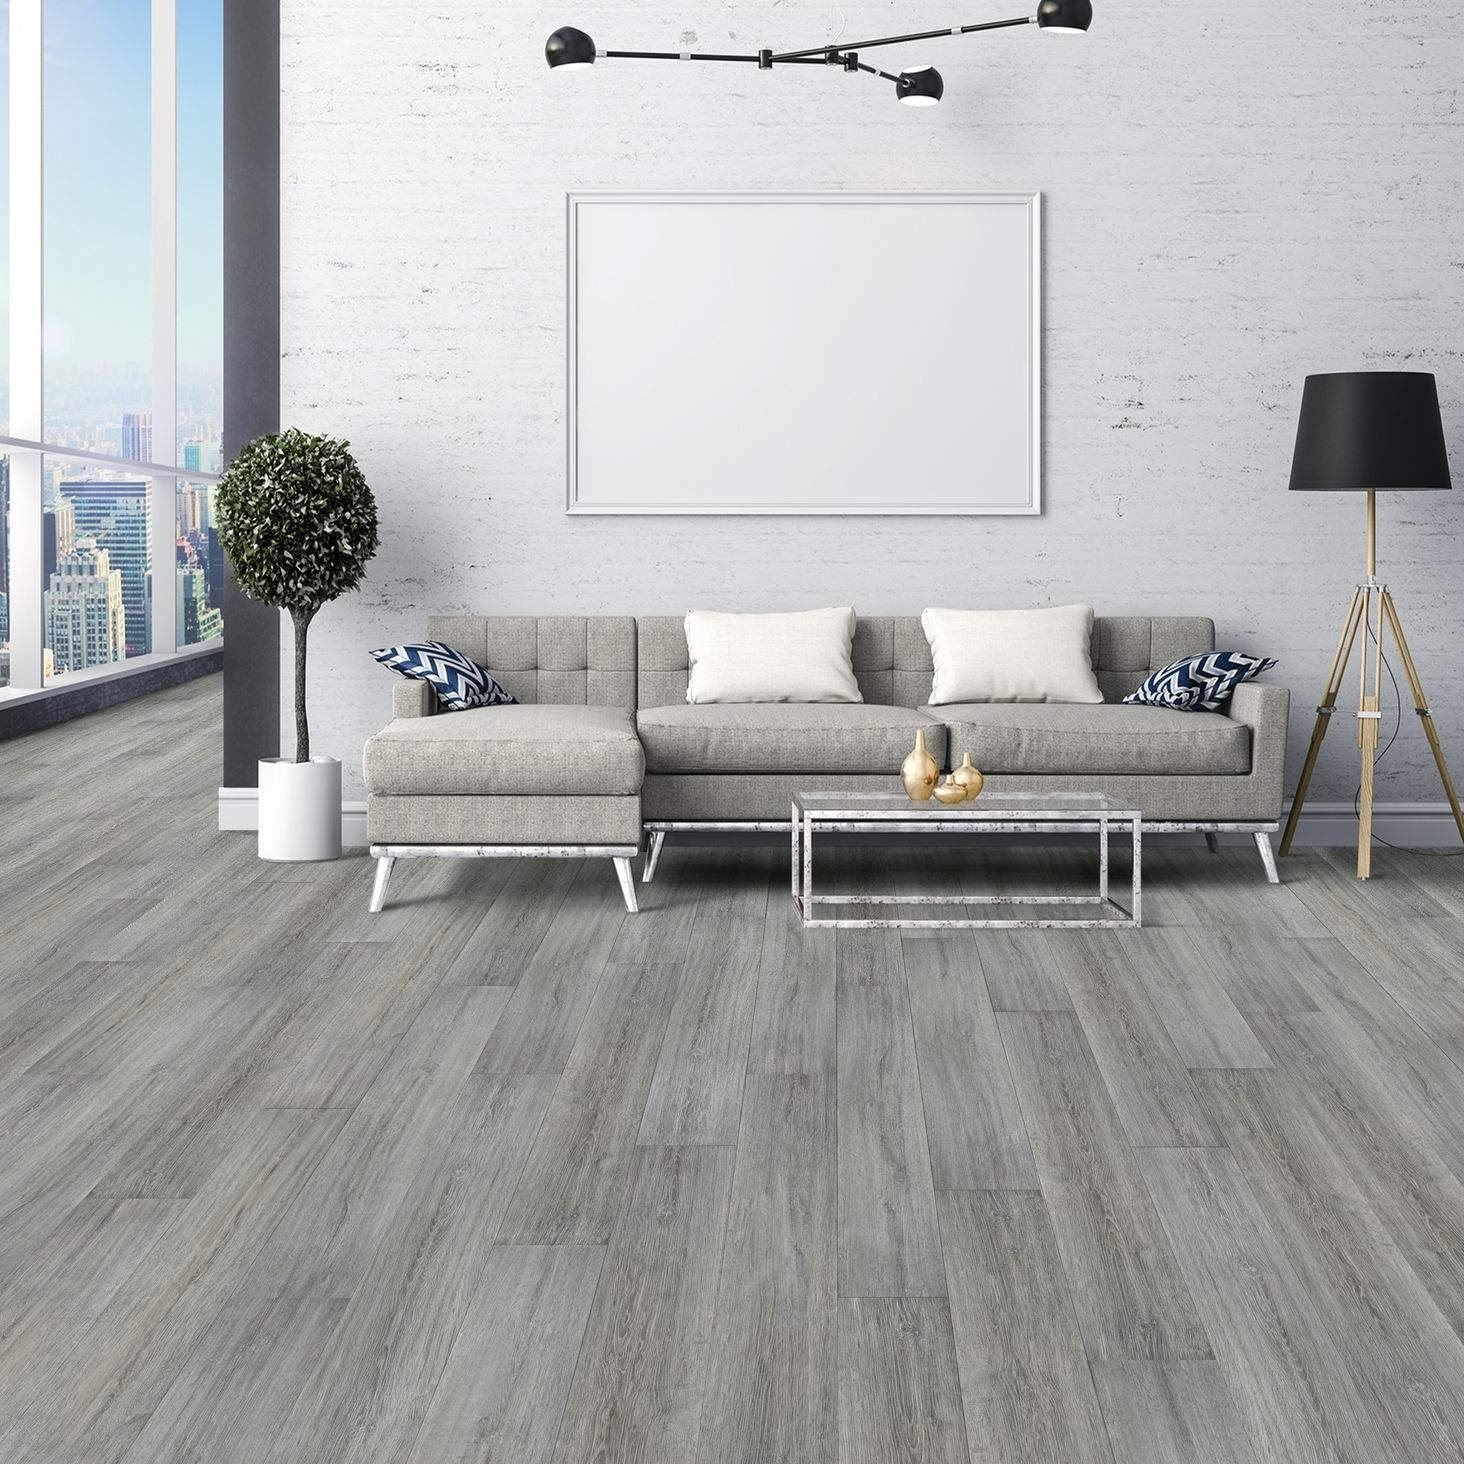 China 4mm Waterproof Lifeproof Acacia Luxury Vinyl Plank Flooring China Laminate Flooring On Walls Laminate Flooring Prices